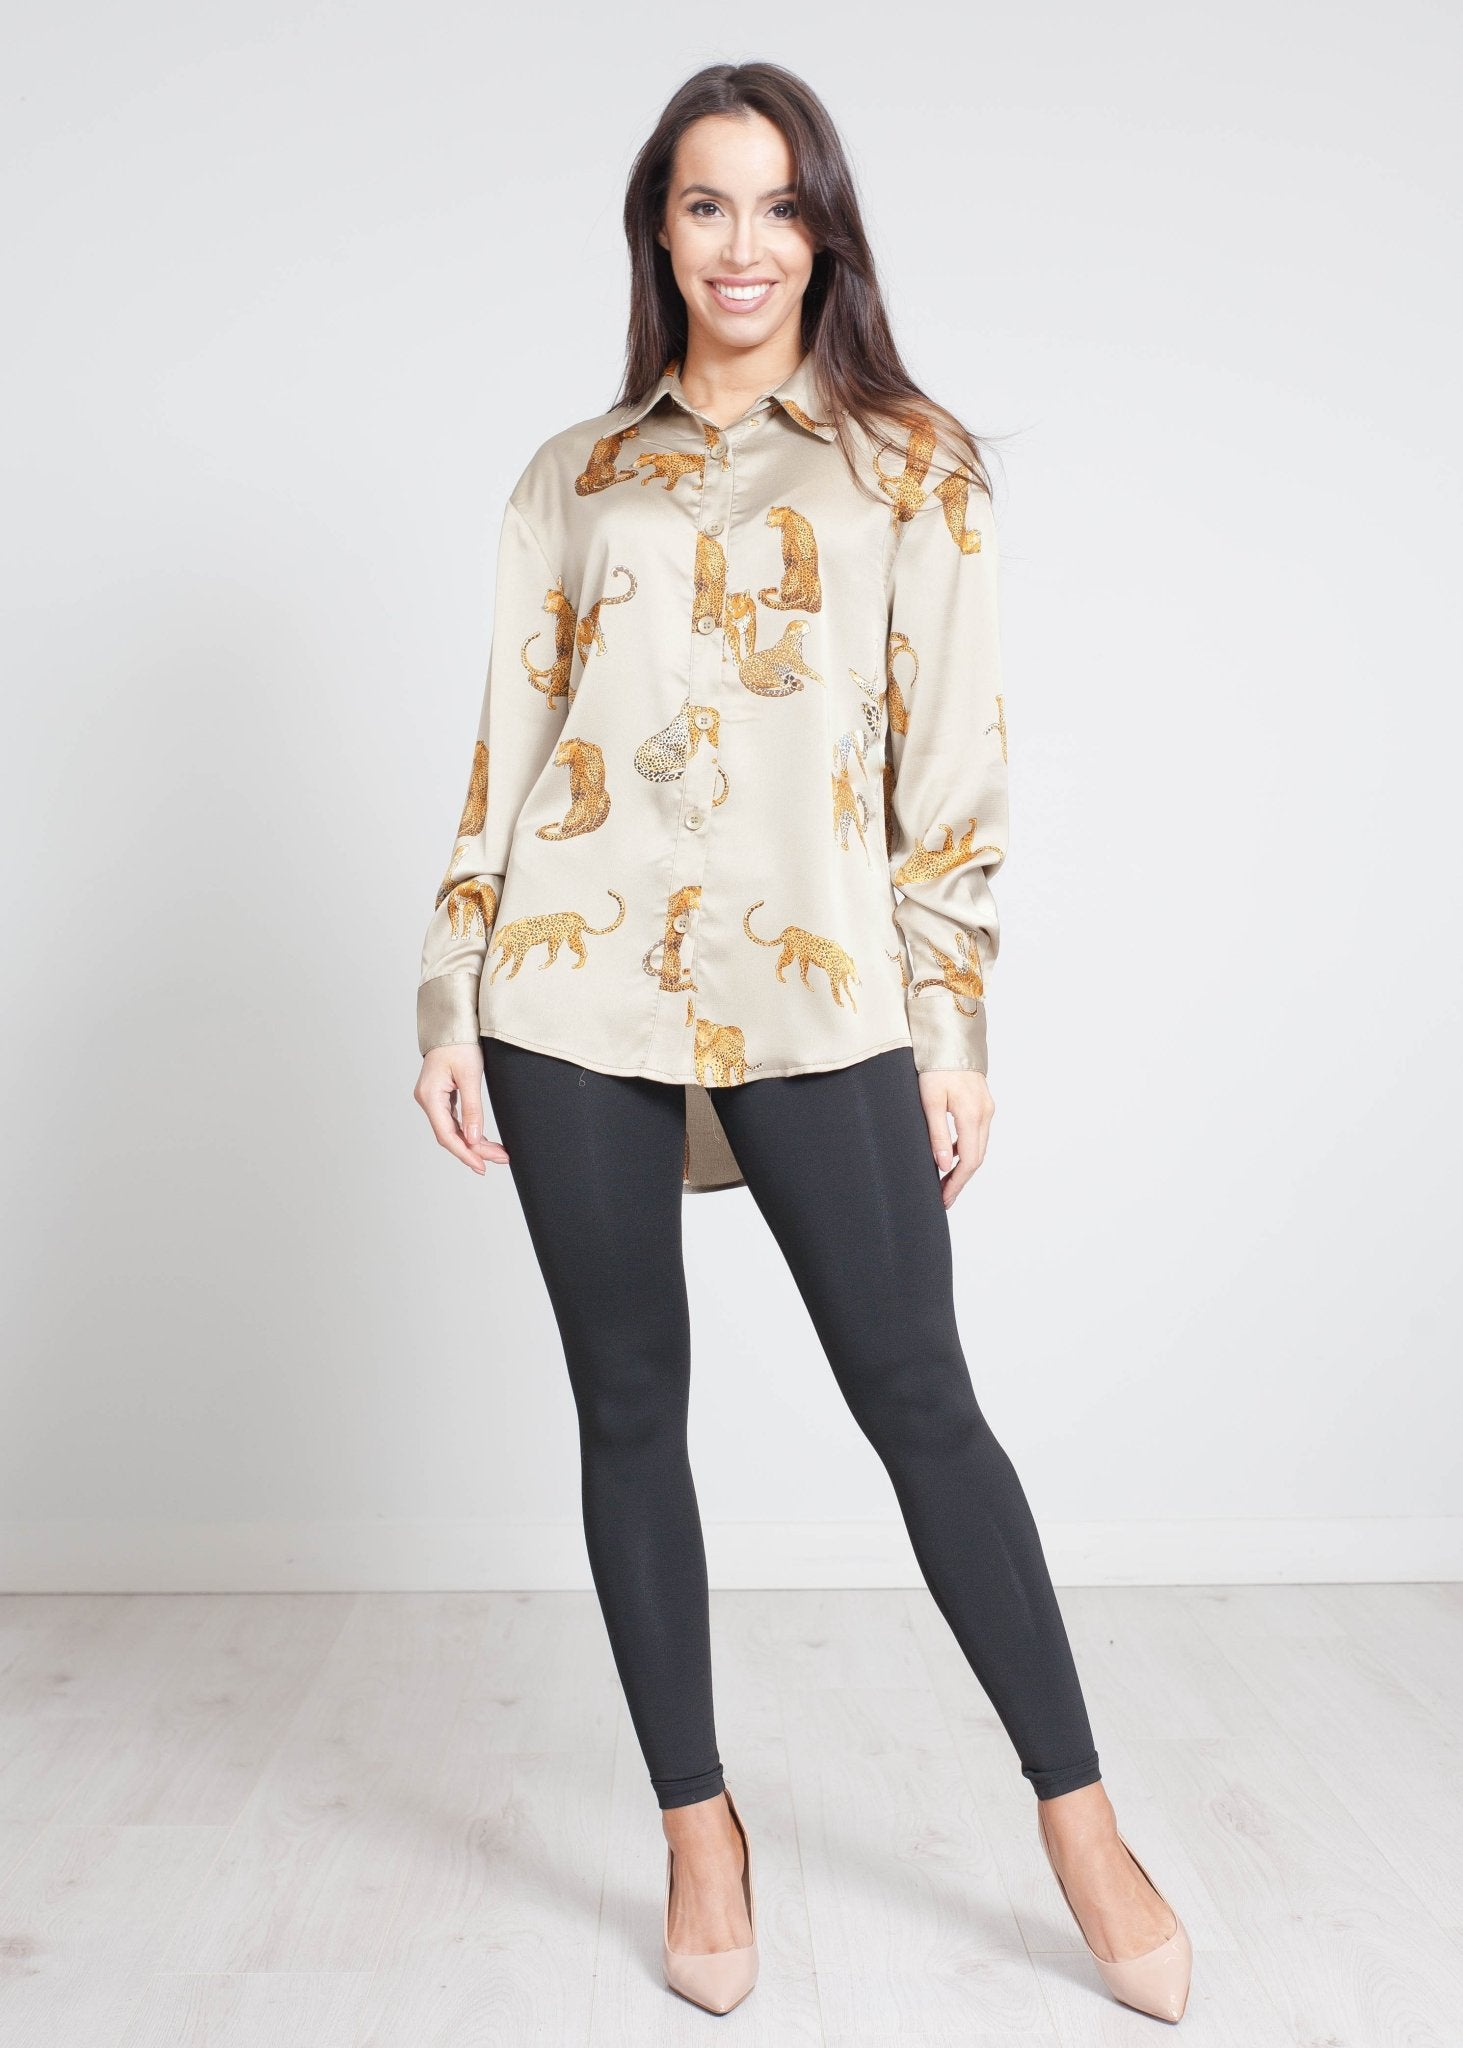 Scarlet Leopard Shirt In Khaki - The Walk in Wardrobe